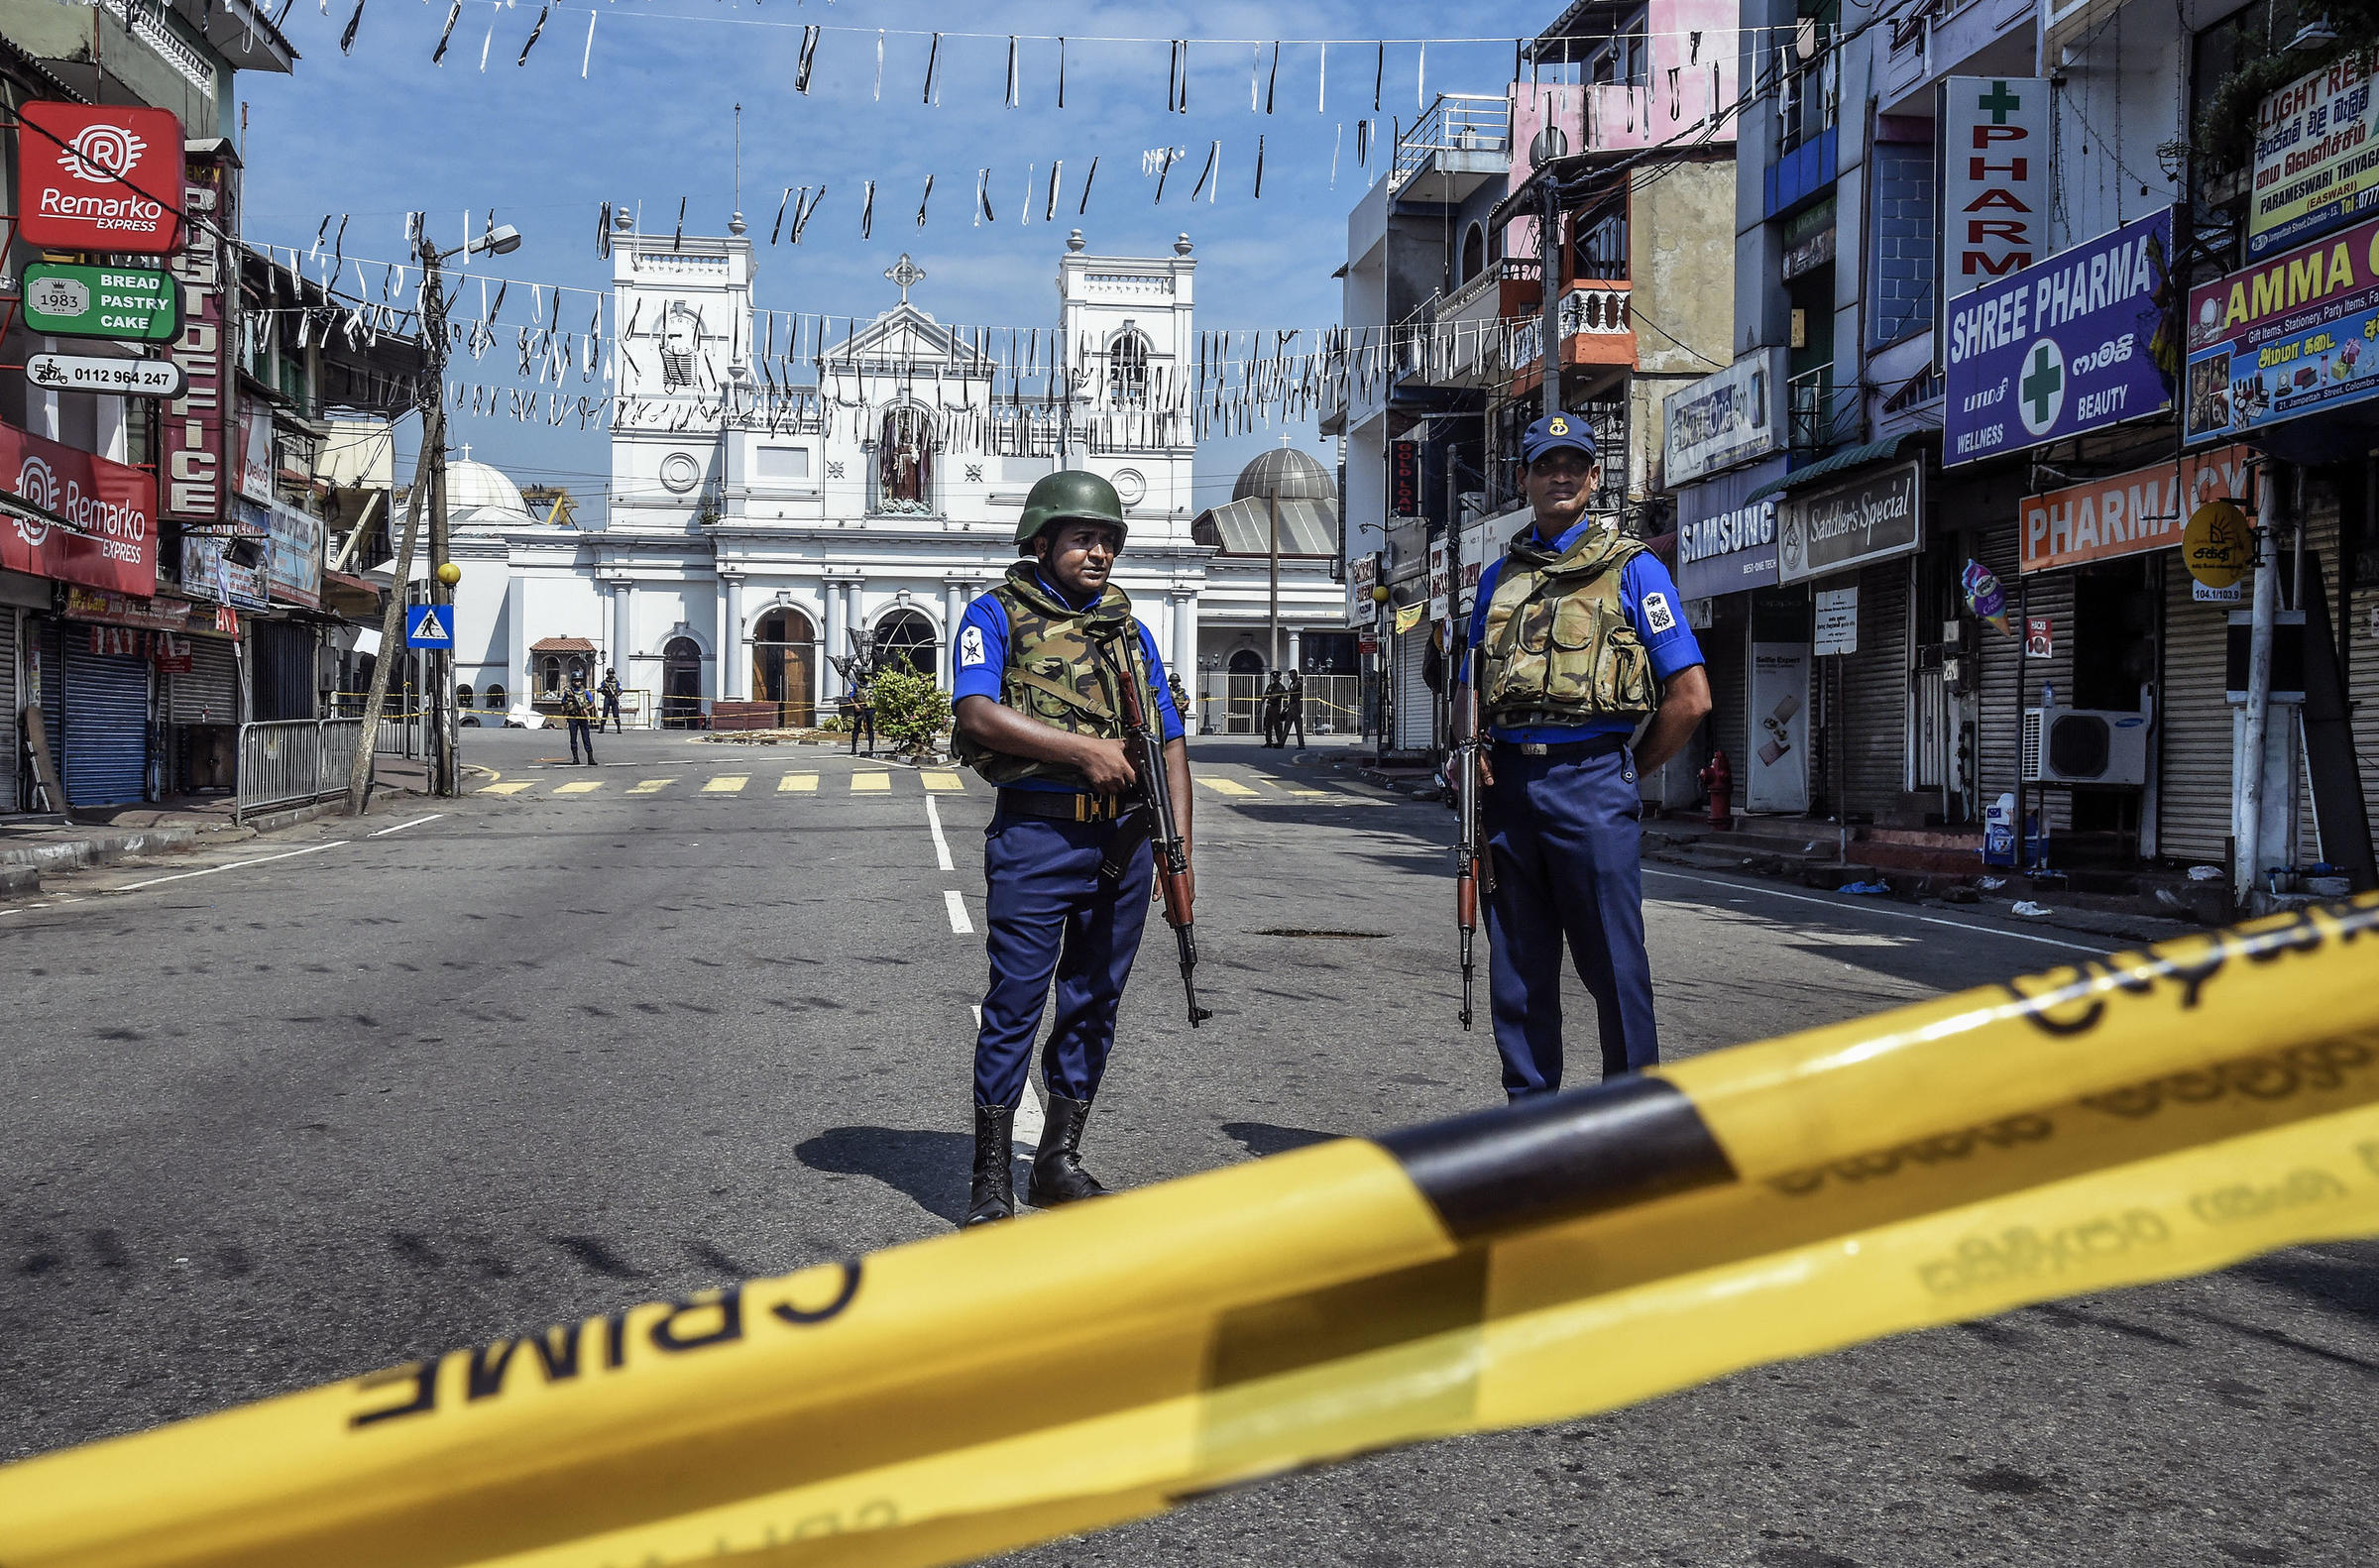 Before Sri Lanka's Easter Attacks, Muslims' Warnings About Terrorism Went Unheeded